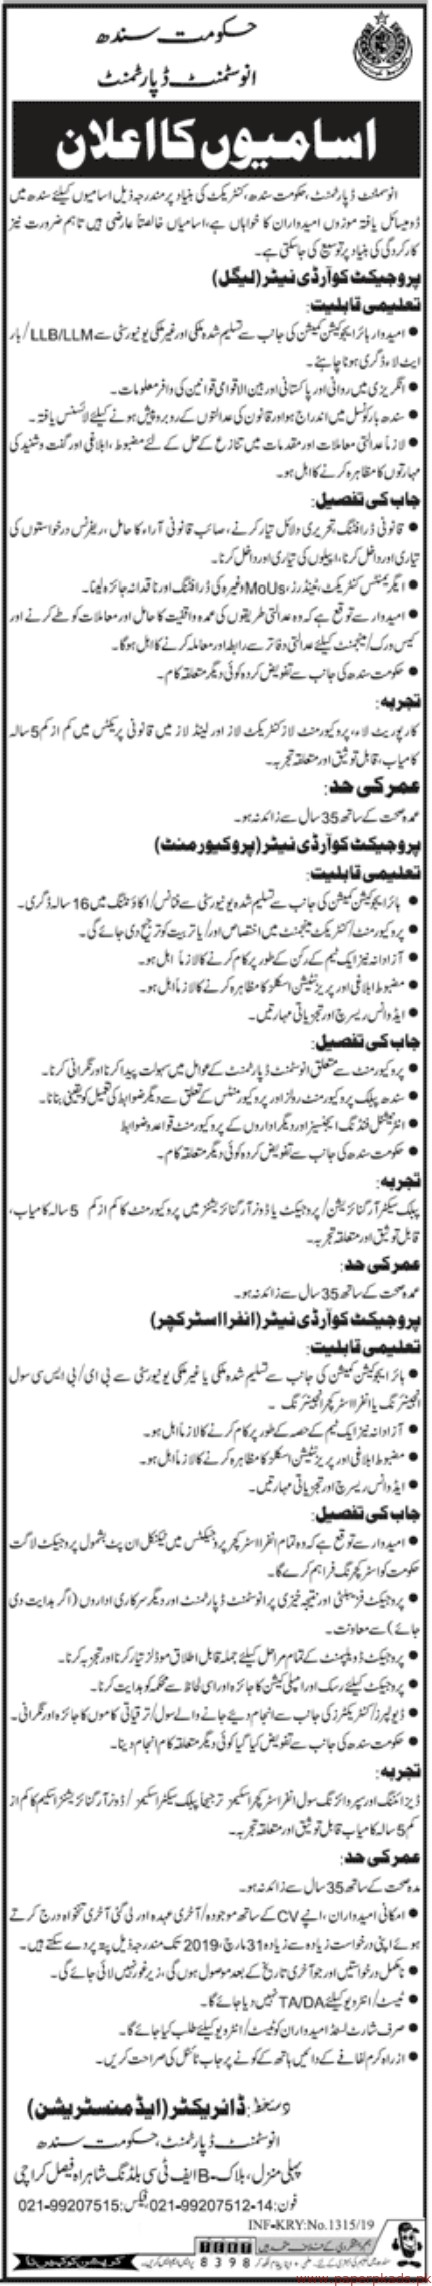 Government of Sindh - Investment Department Jobs 2019 Latest